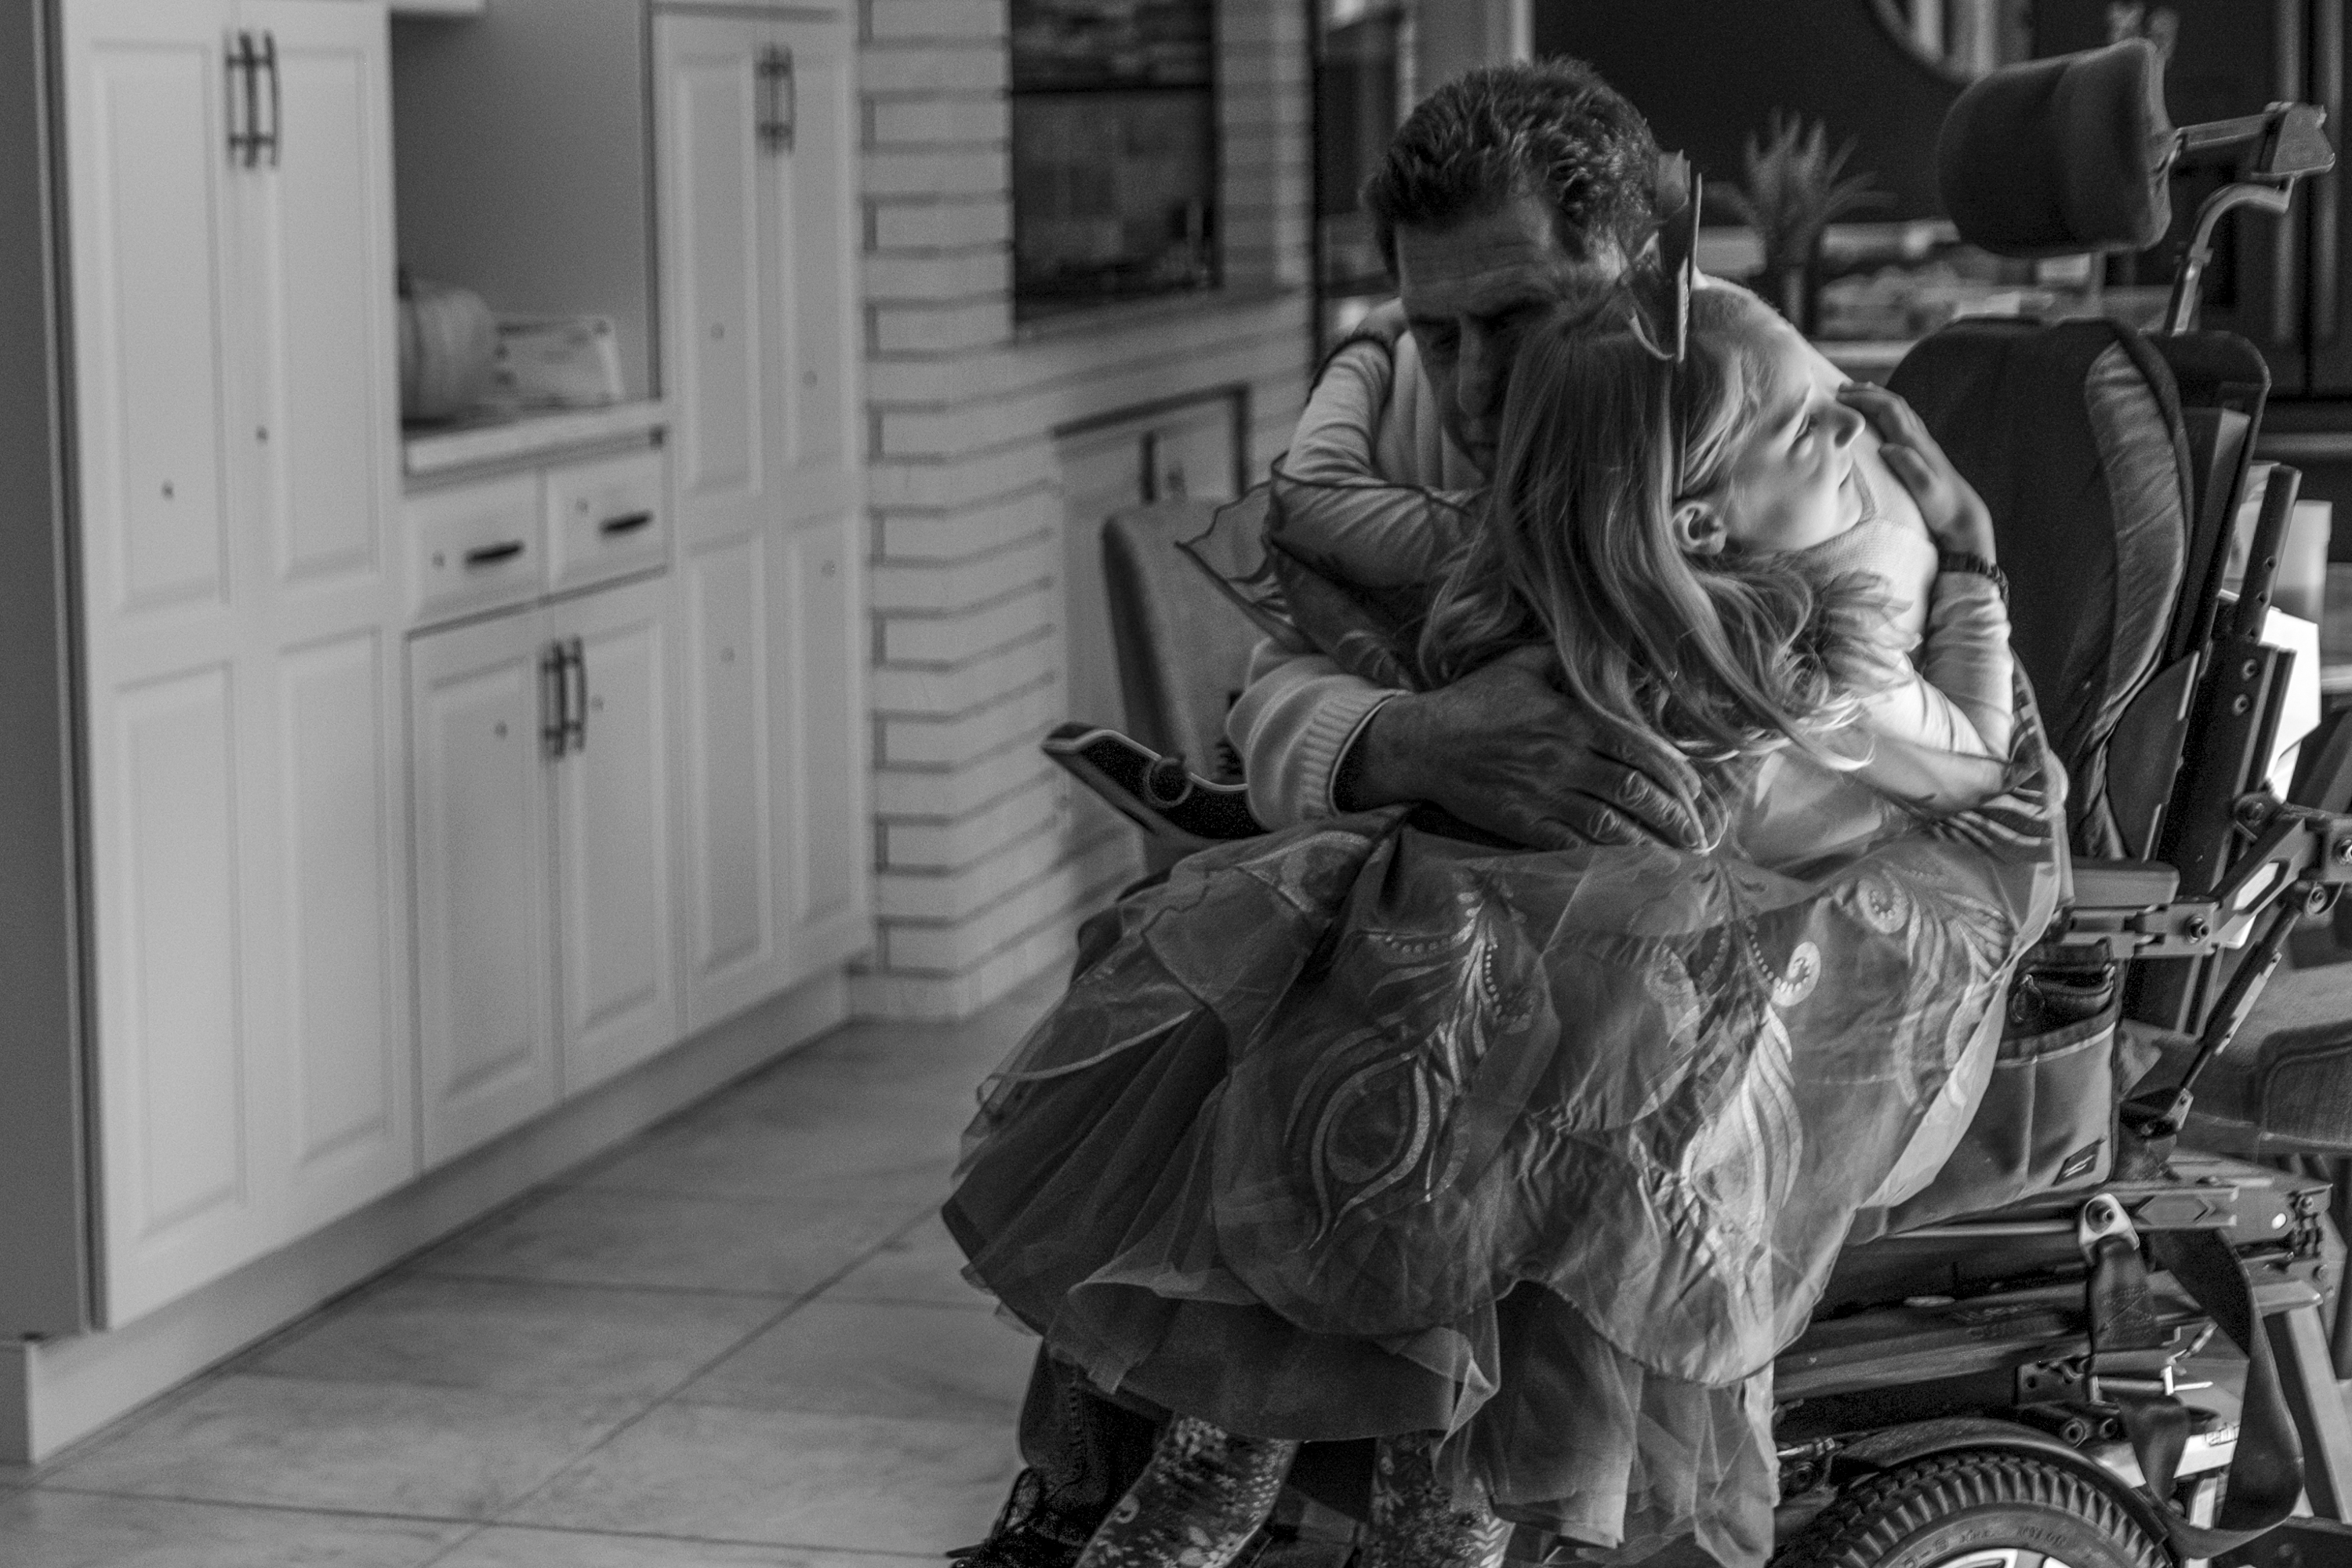 October 18th, 2020. Joseph's granddaughter hugs him after tiring herself out being a peacock and showing off her feathers.